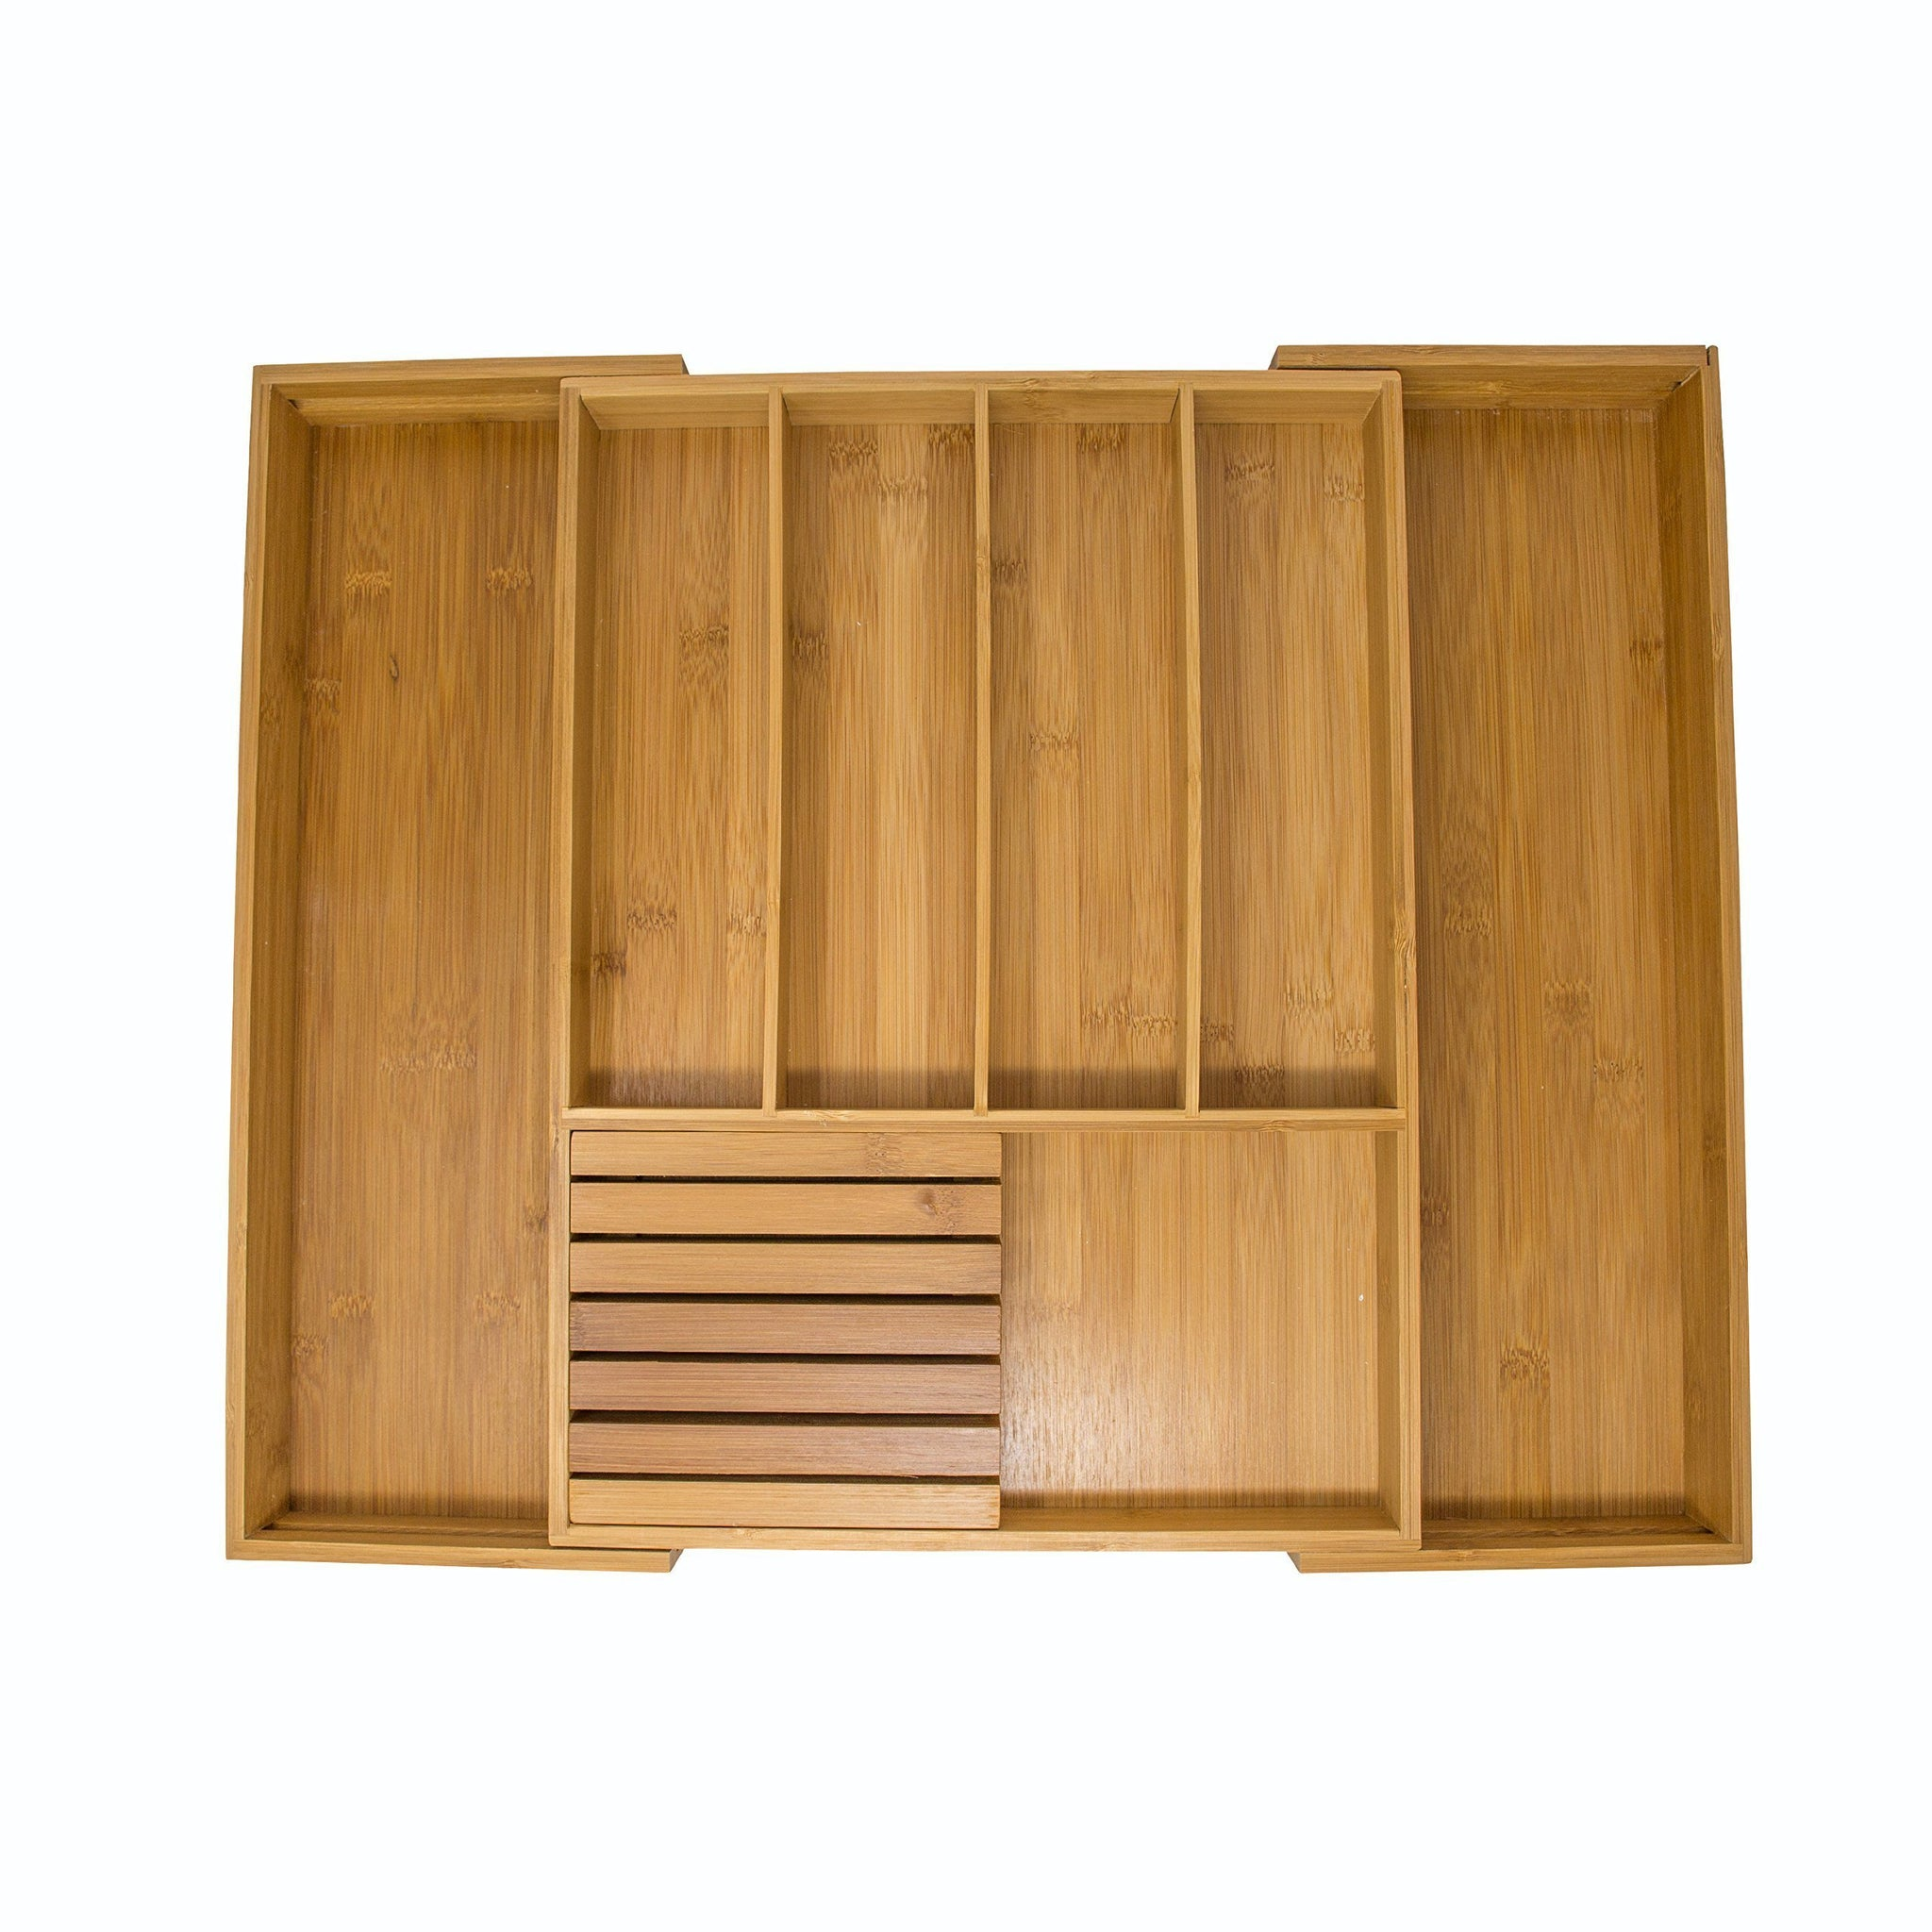 Vivaware Expandable Bamboo Kitchen Drawer Organizer , 6 Roomy Spaces and Knife Block. 100% Bamboo Eco-Friendly , Expandable Adjustable Utensil Trays